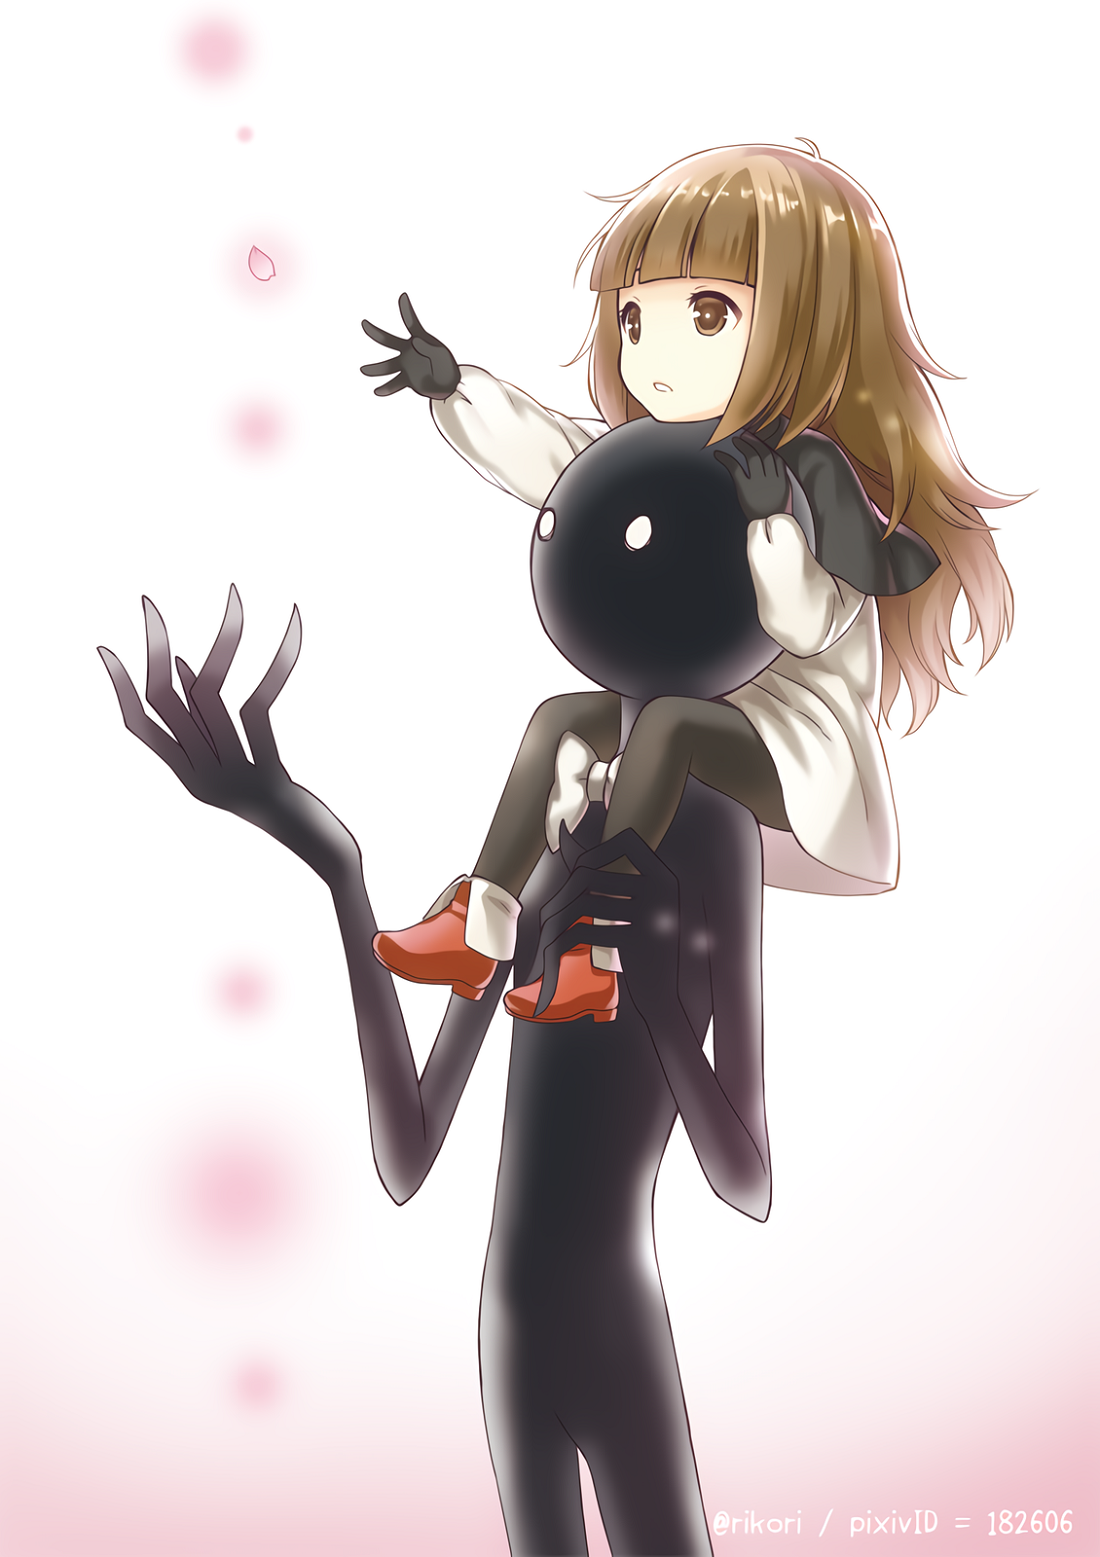 Deemo The Movie: Black and white